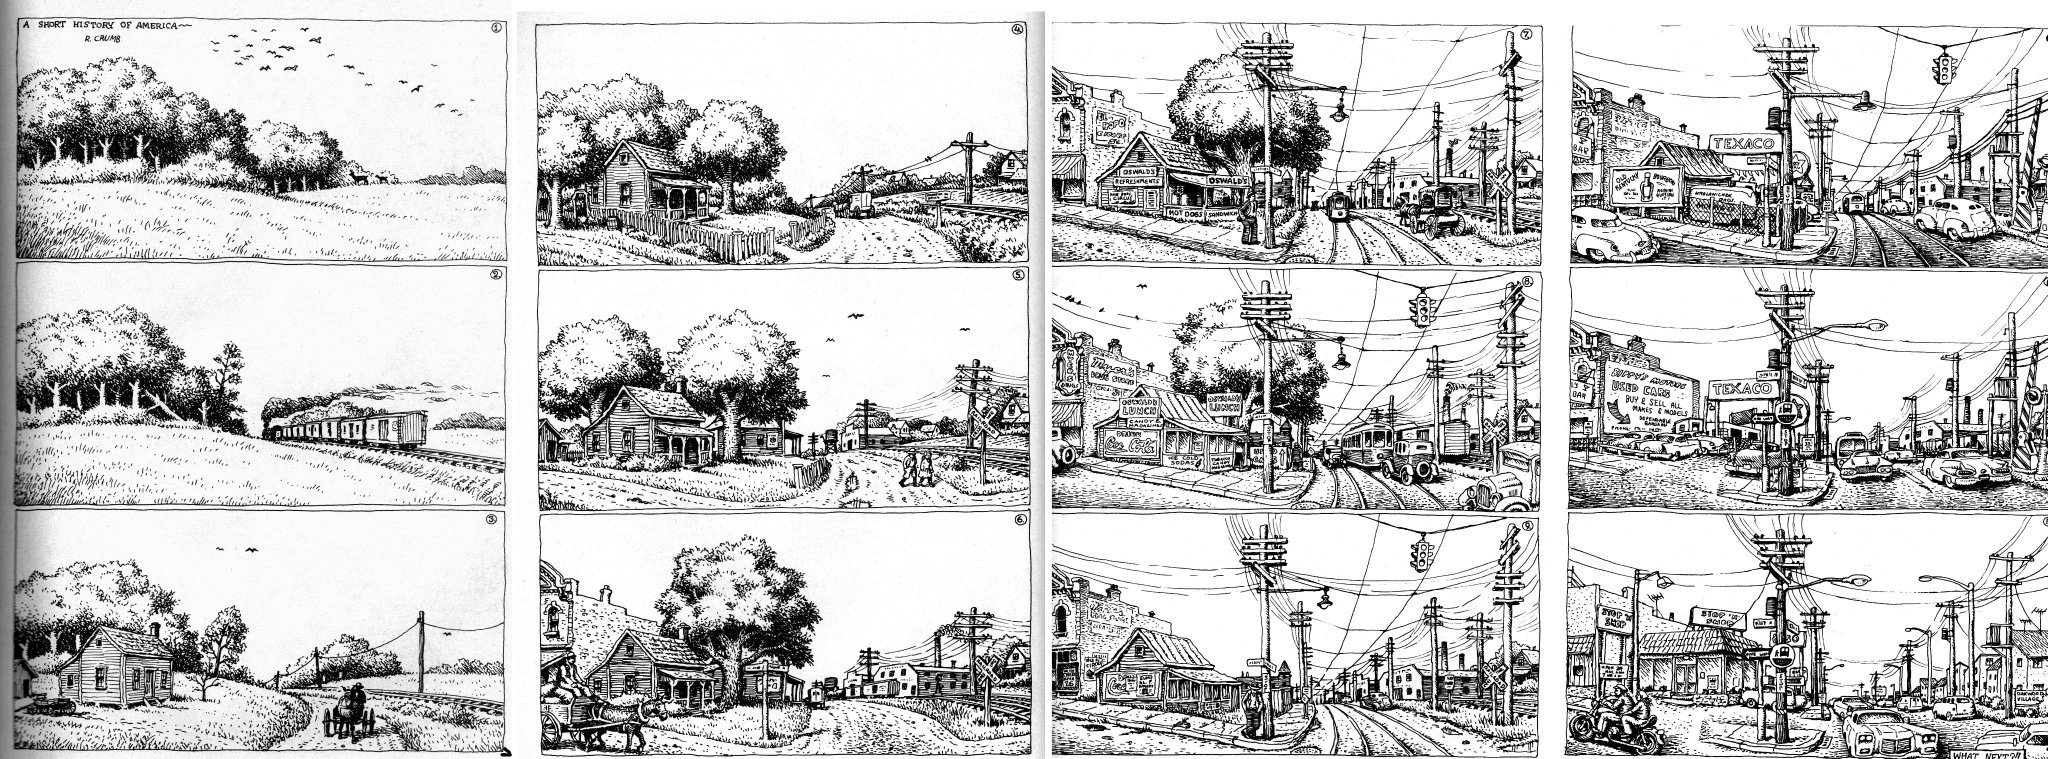 A Short History of America Robert Crumb